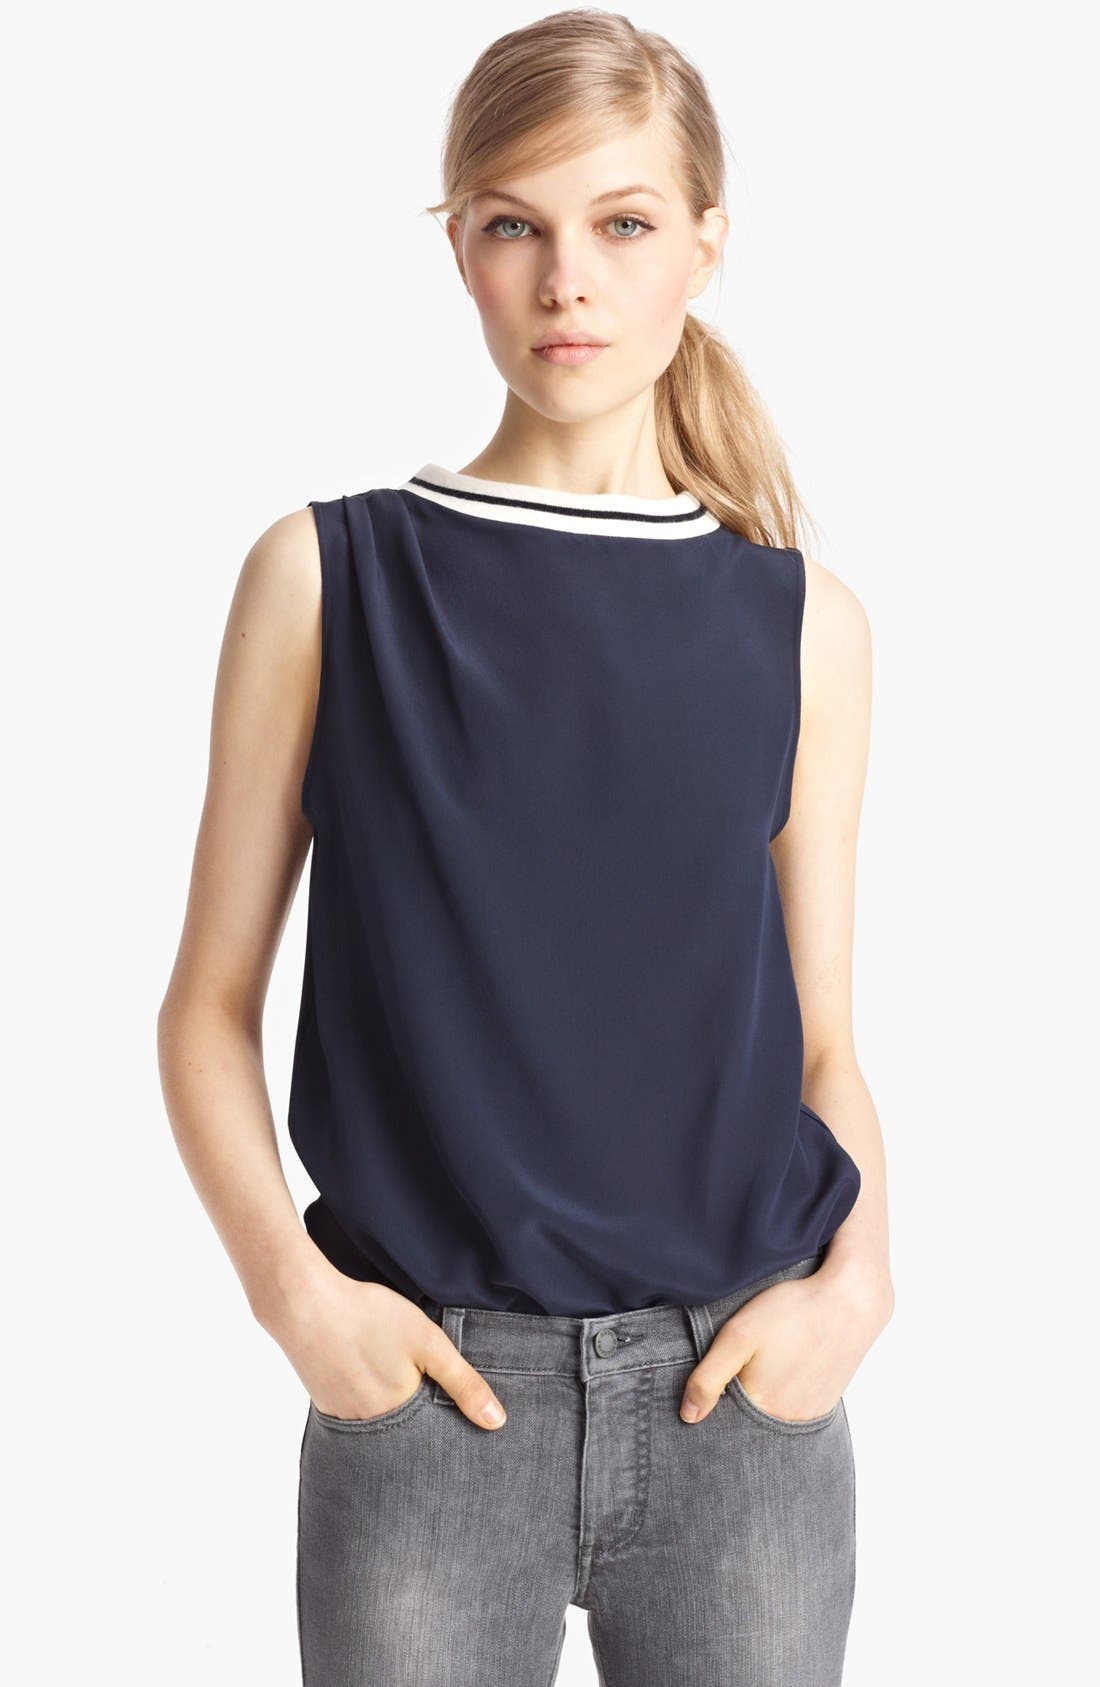 Alternate Image 1 Selected - Band of Outsiders Crêpe de Chine Tank